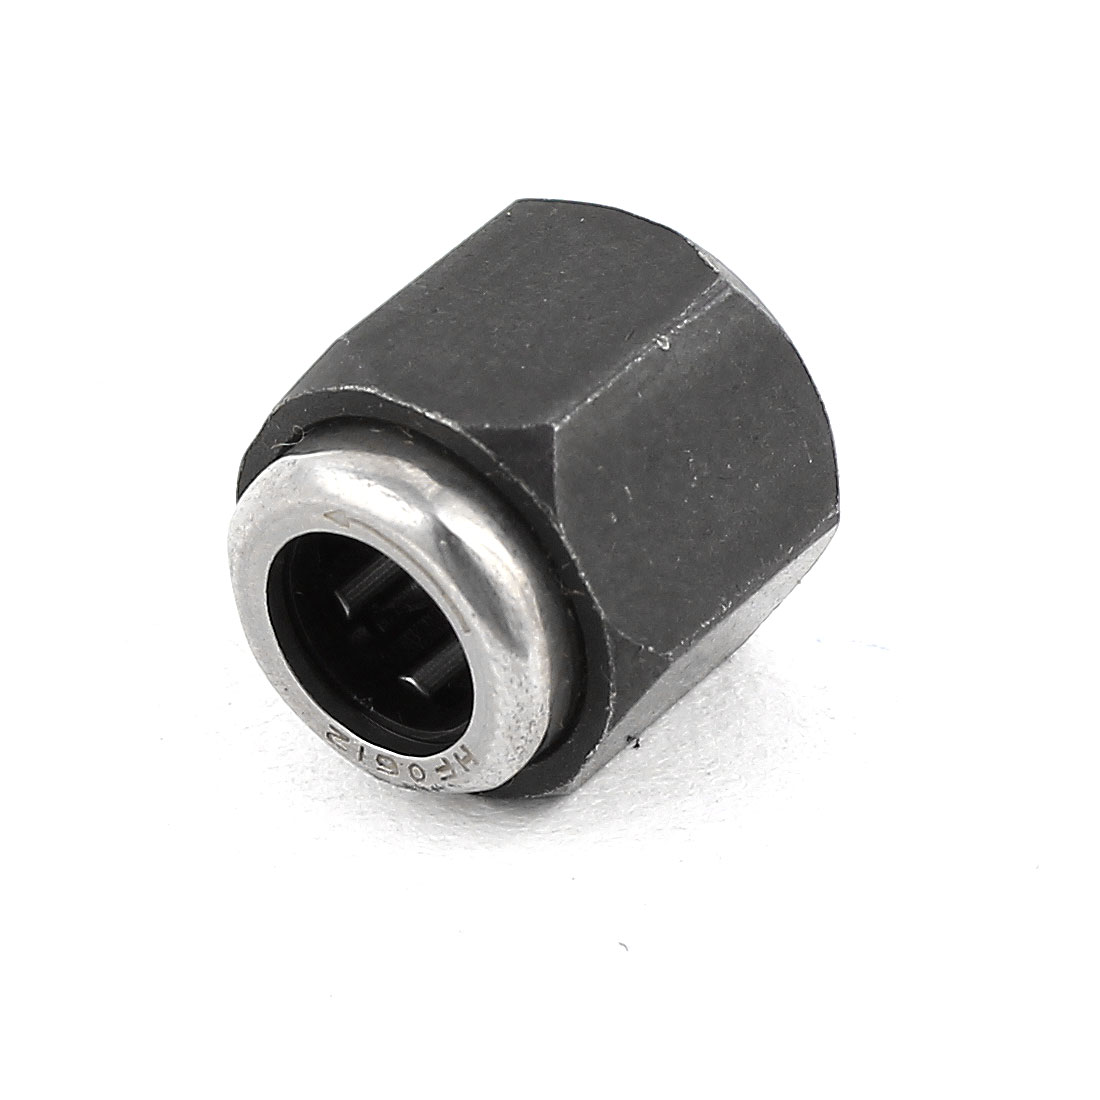 R025 Hex Nut One Way Bearing 12mm for 21/18 Nitro Engine RC 1/10 Car